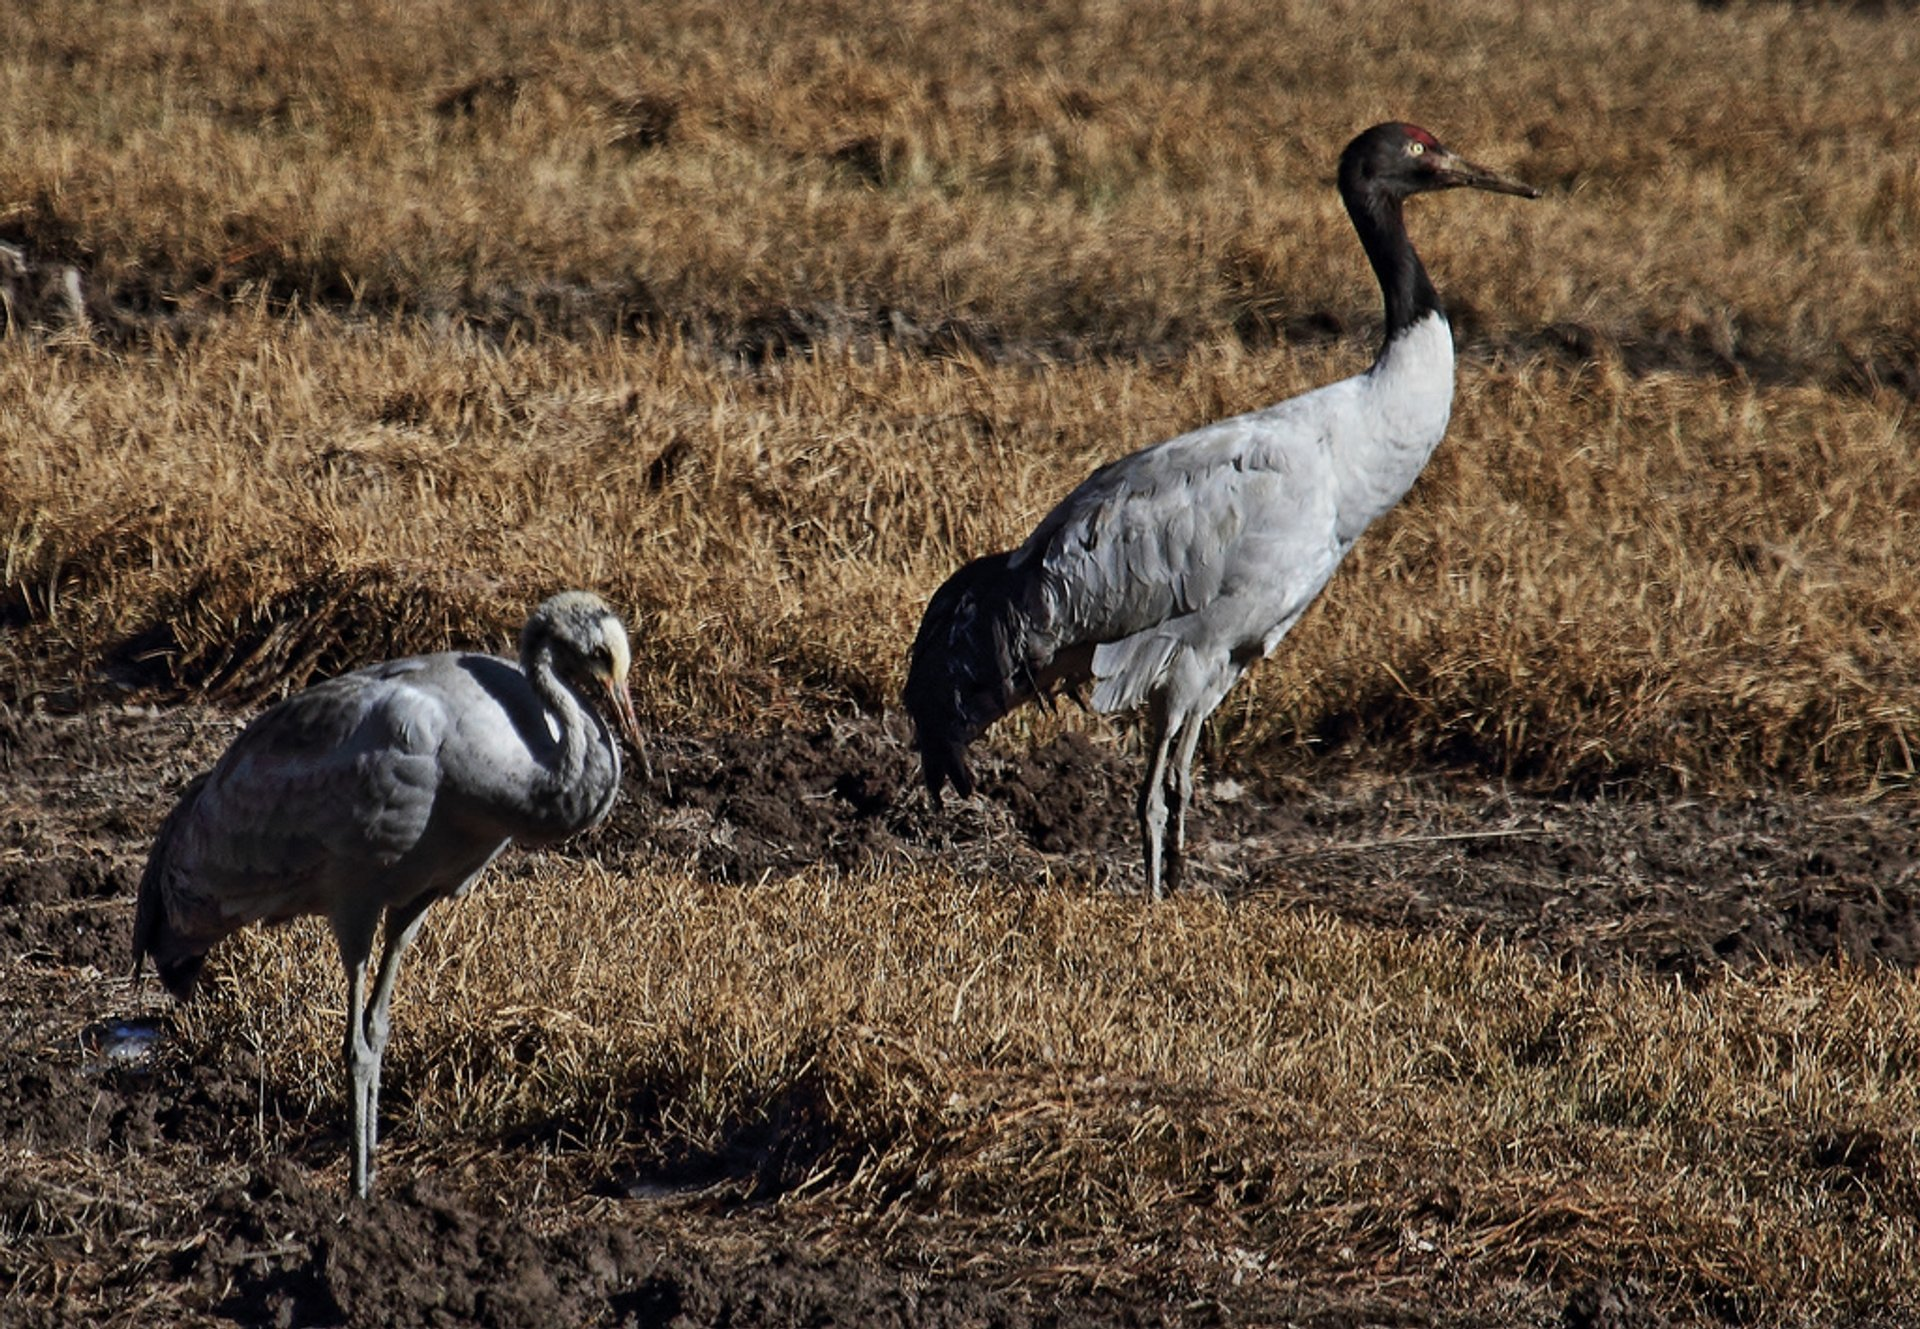 Black-Necked Cranes in Bhutan - Best Time